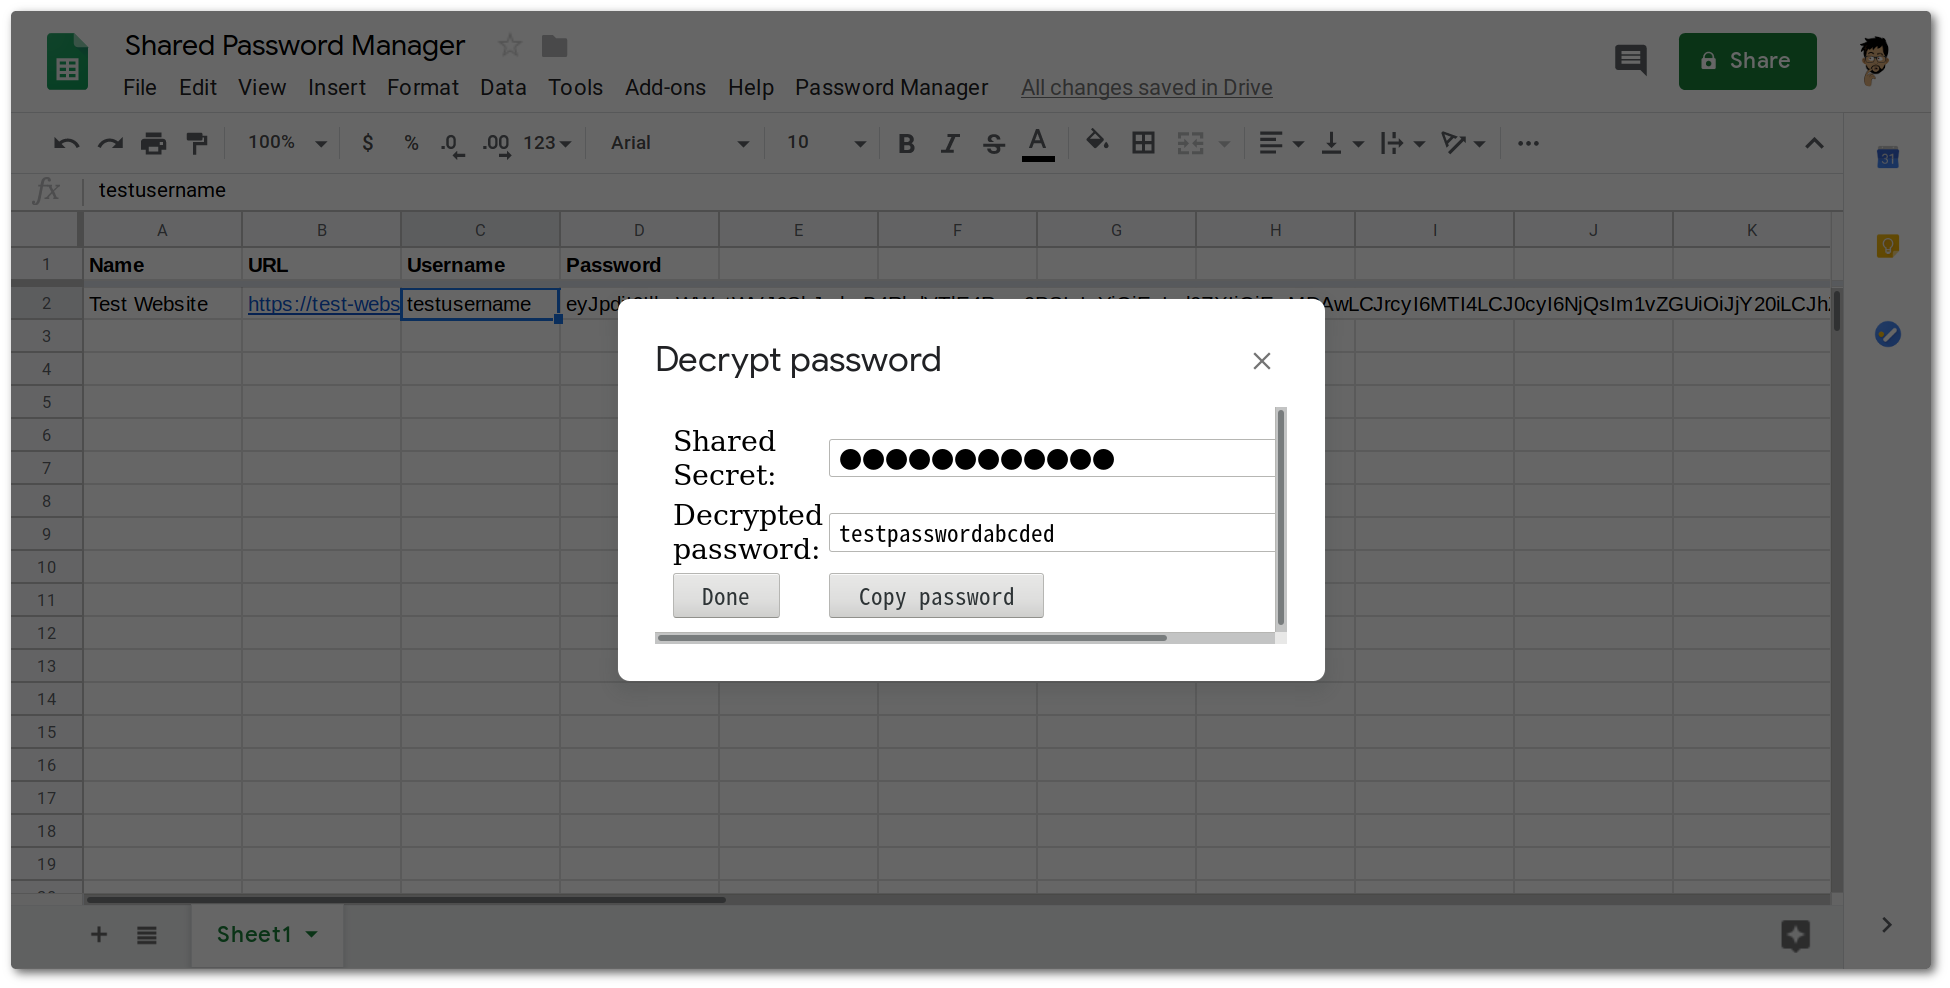 Building a shared password manager on Google Sheets